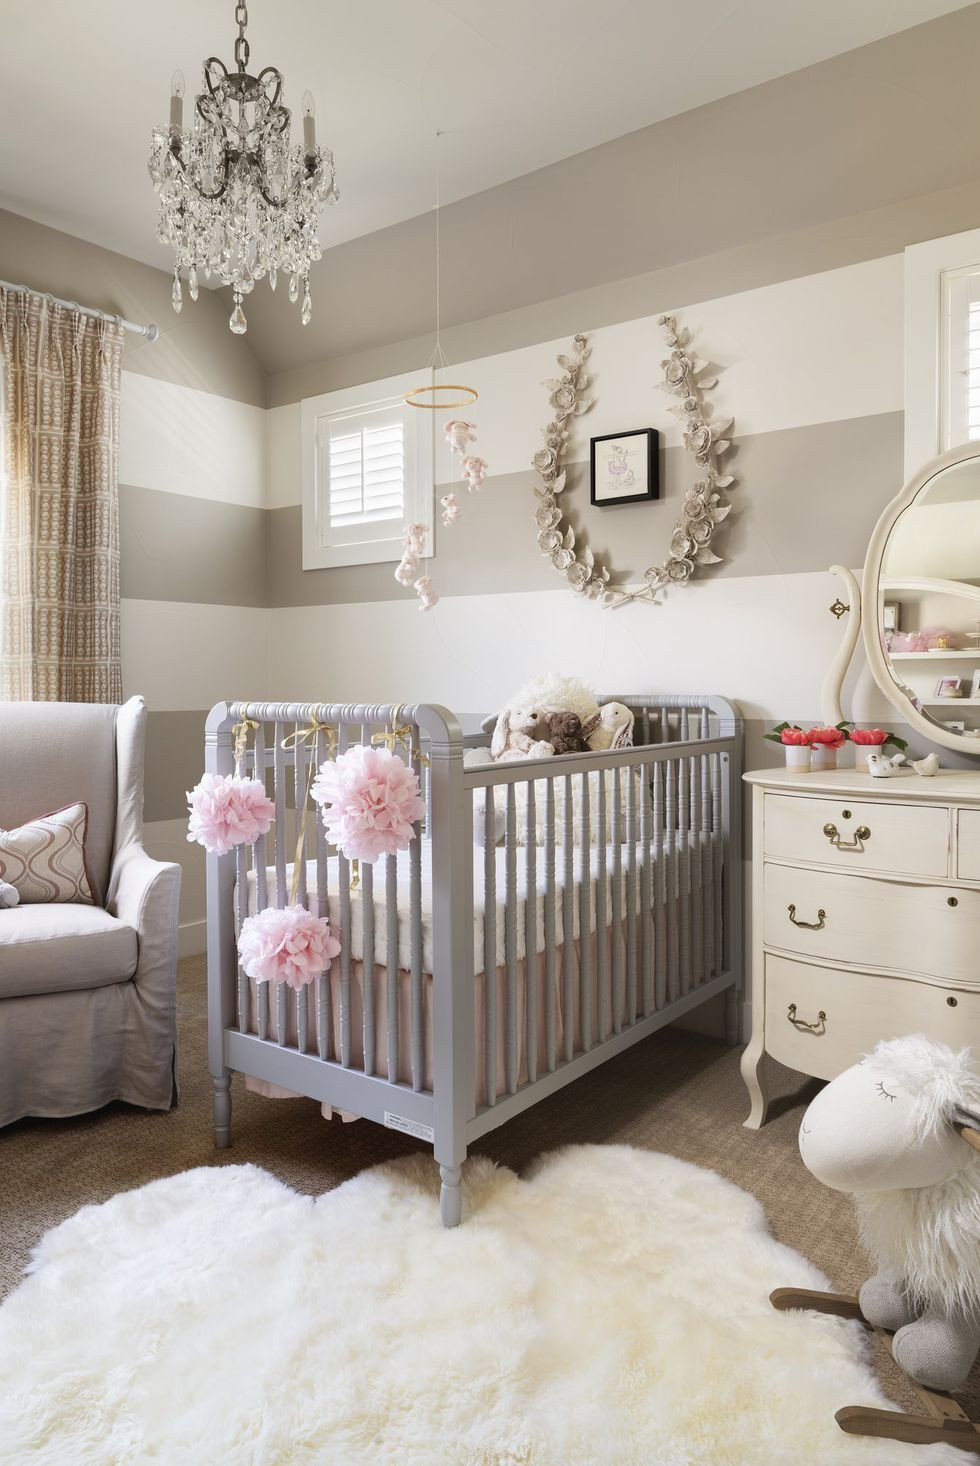 Baby Girl Bedroom Decor Elegant Stylish Baby Rooms even Adults Would Adore